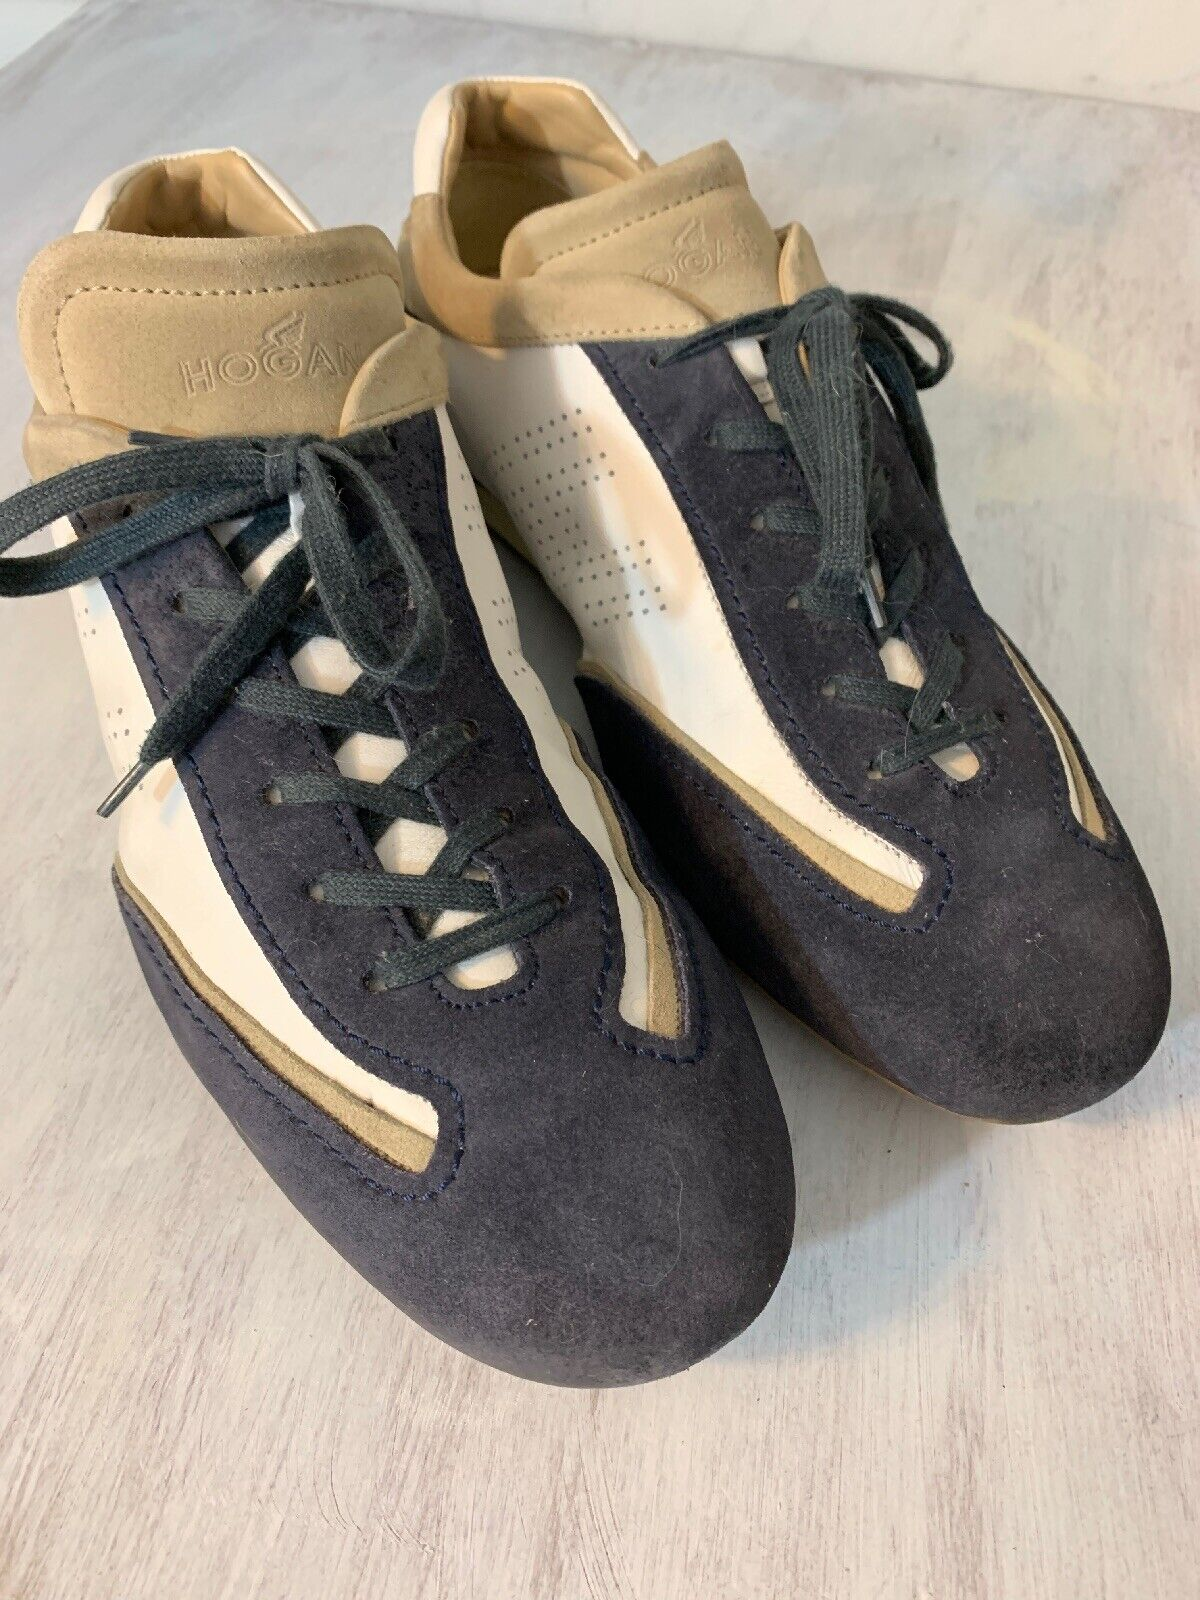 Stupendous Hogan Sneakers 10 Mens Tri Tone Suede Leather White Navy Khaki Gmtry Best Dining Table And Chair Ideas Images Gmtryco